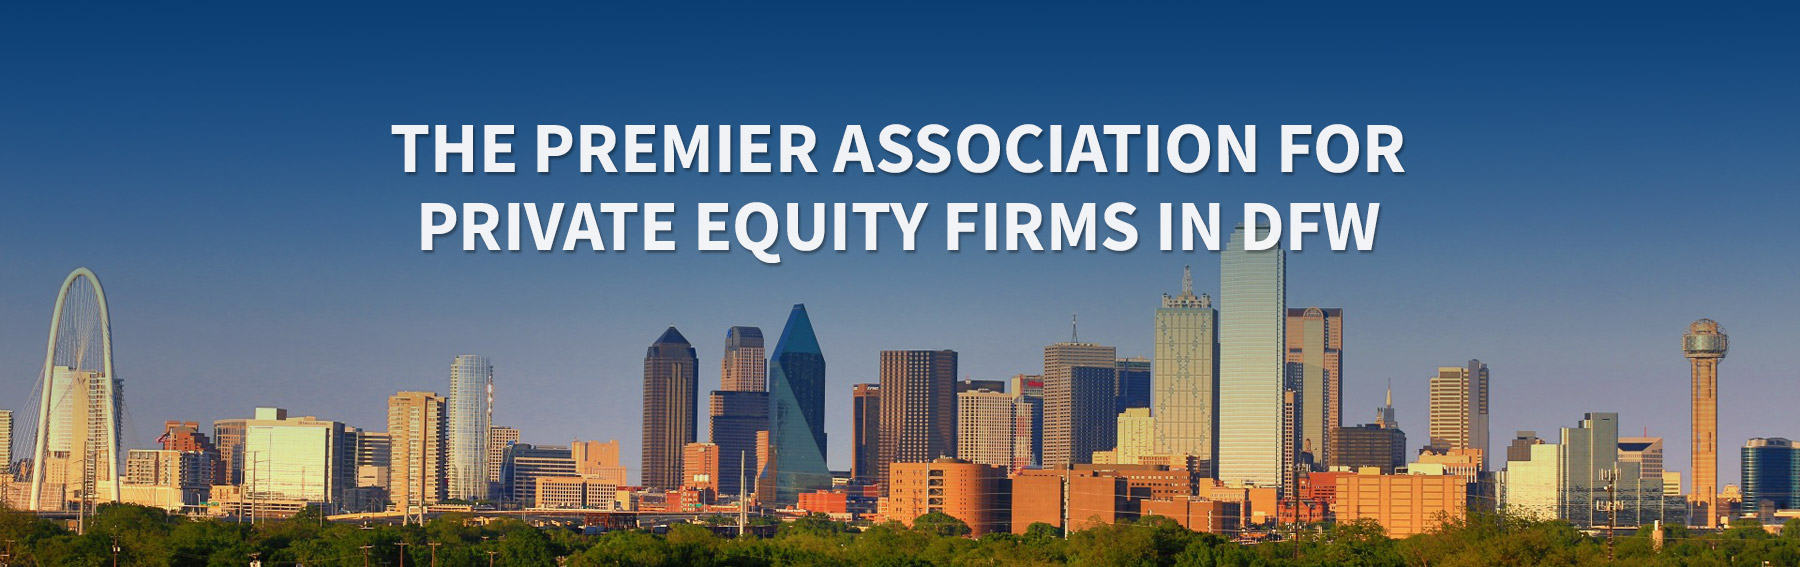 The Premier Association for Private Equity Firms in dfw